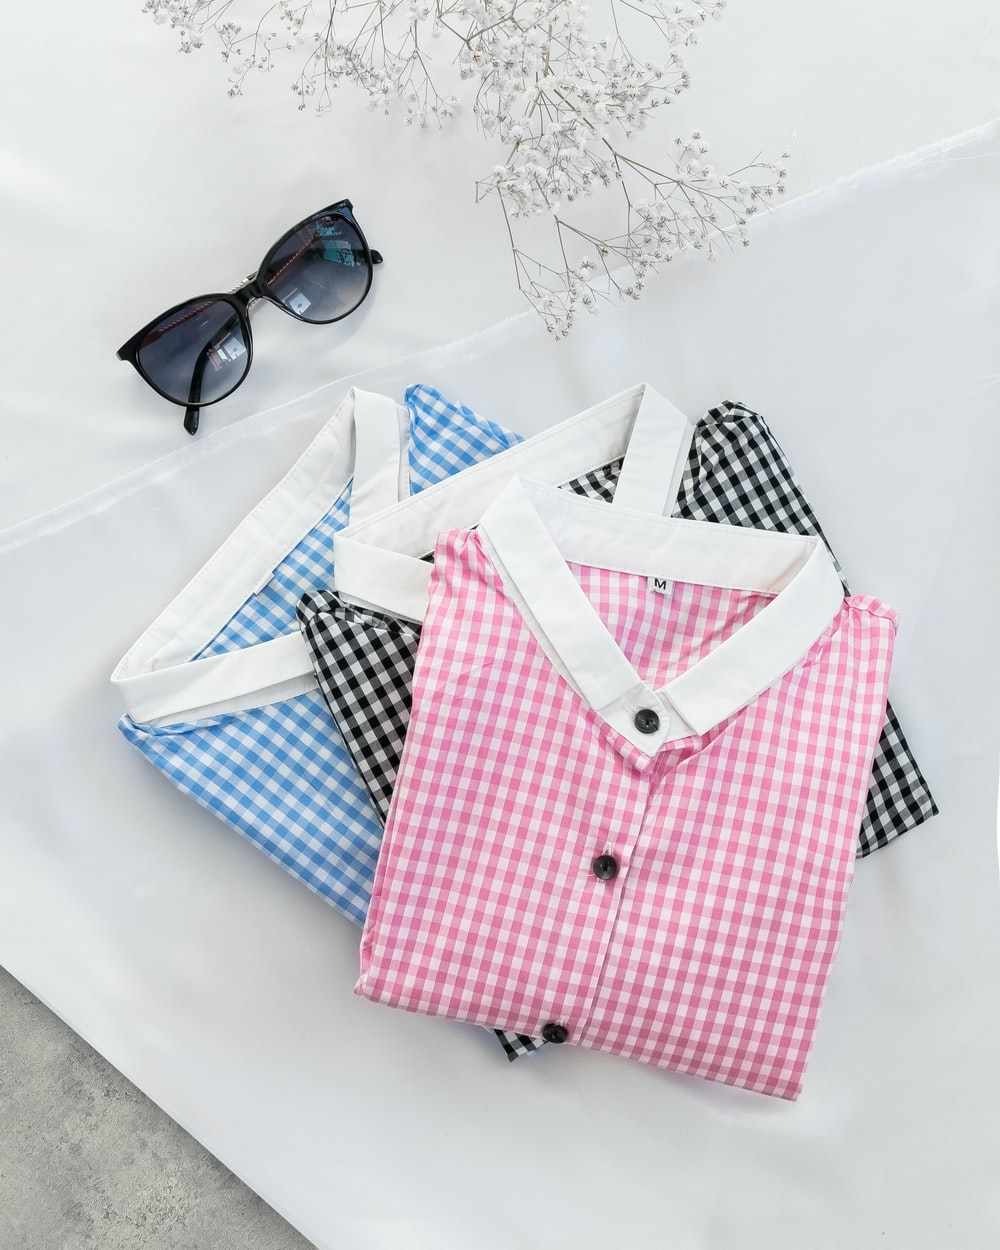 red and white plaid button up shirt